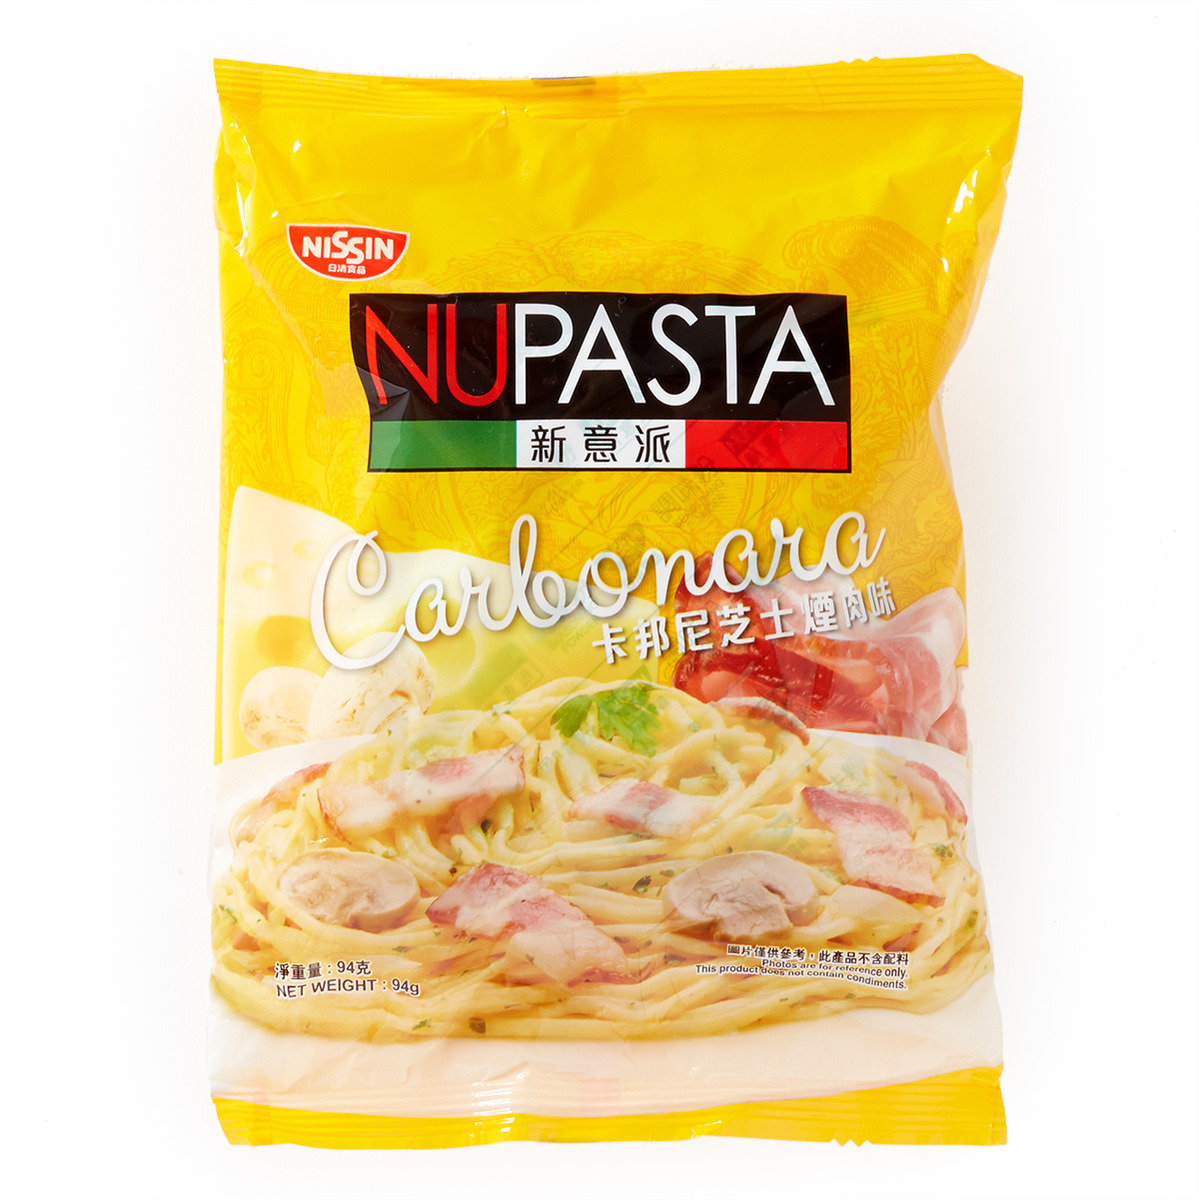 Nupasta Pack Bacon in Carbonara Sauce Flavour